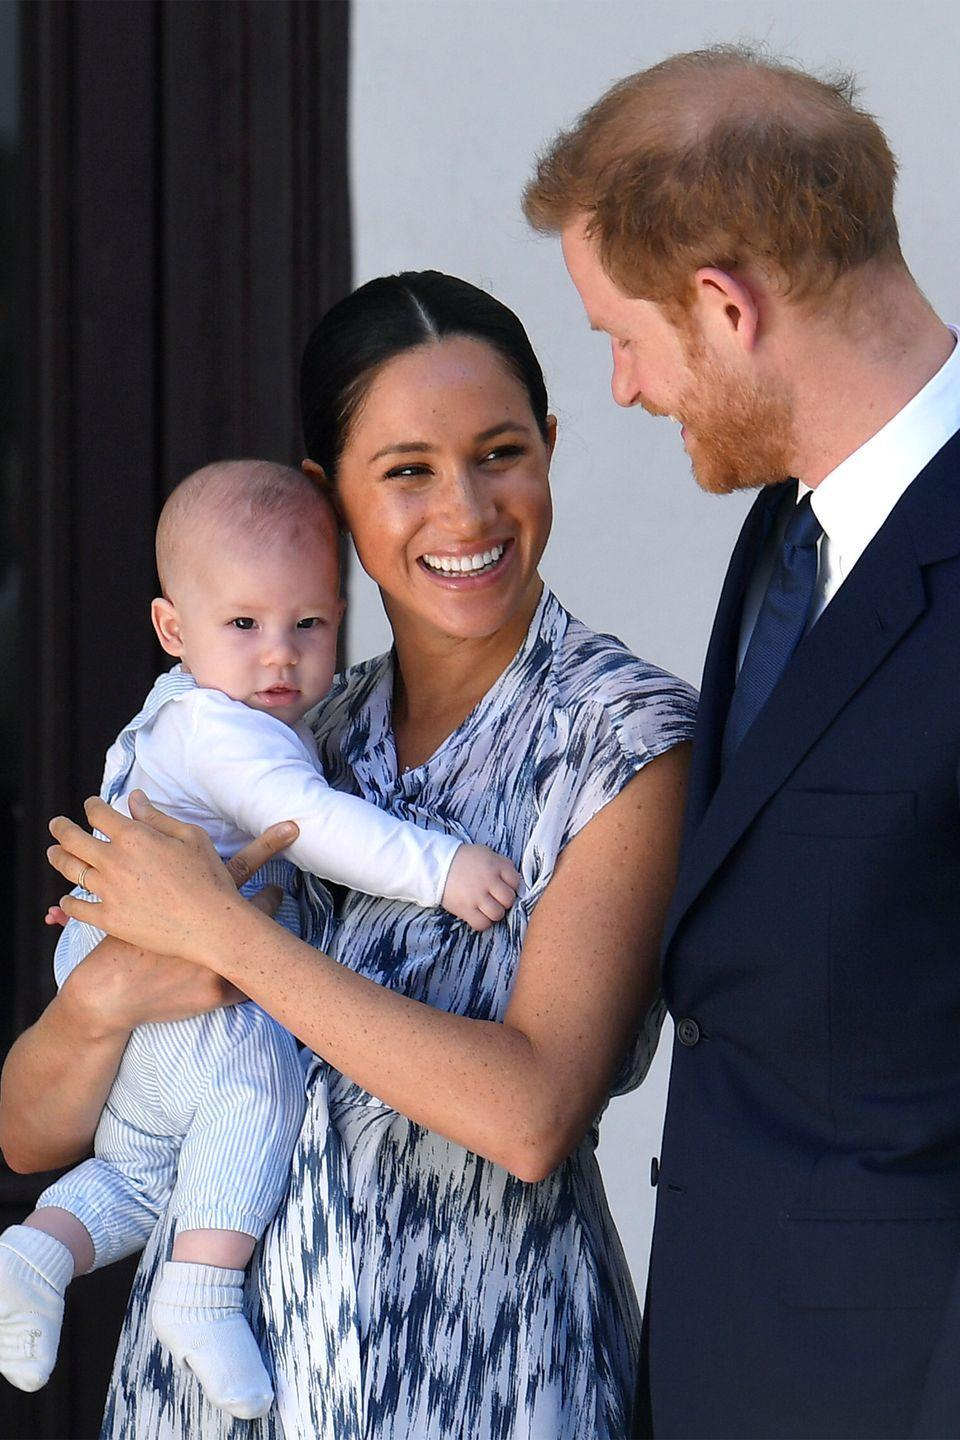 <p>Meghan looks at Harry while holding baby Archie during the South African royal tour.</p>